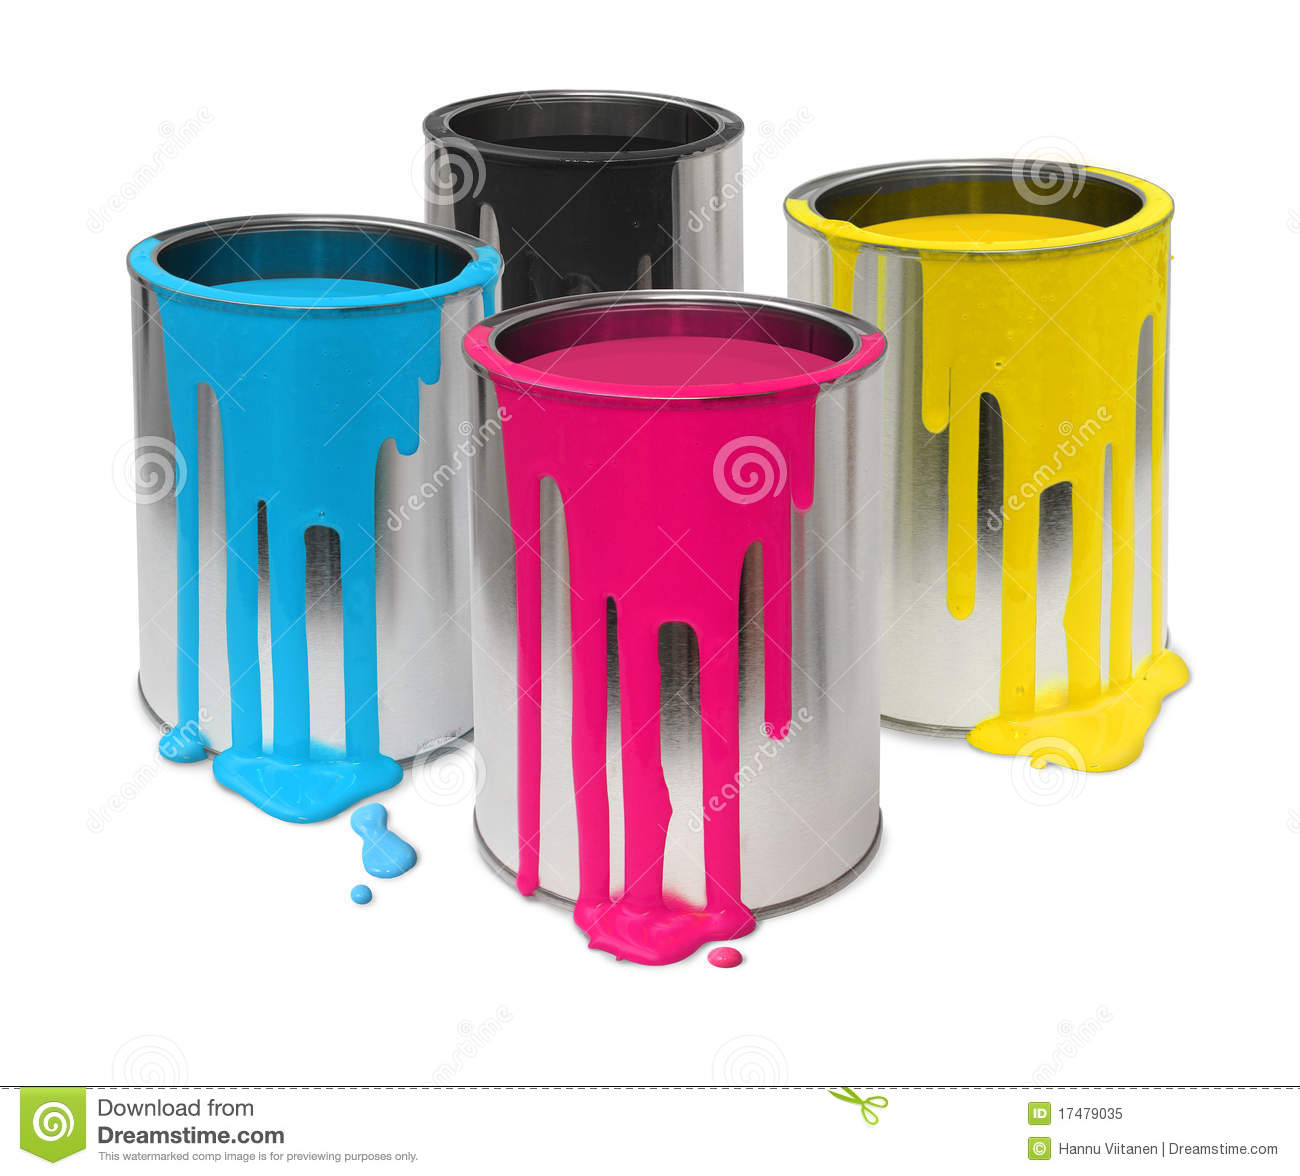 cmyk paint tin cans royalty free stock photo image 17479035